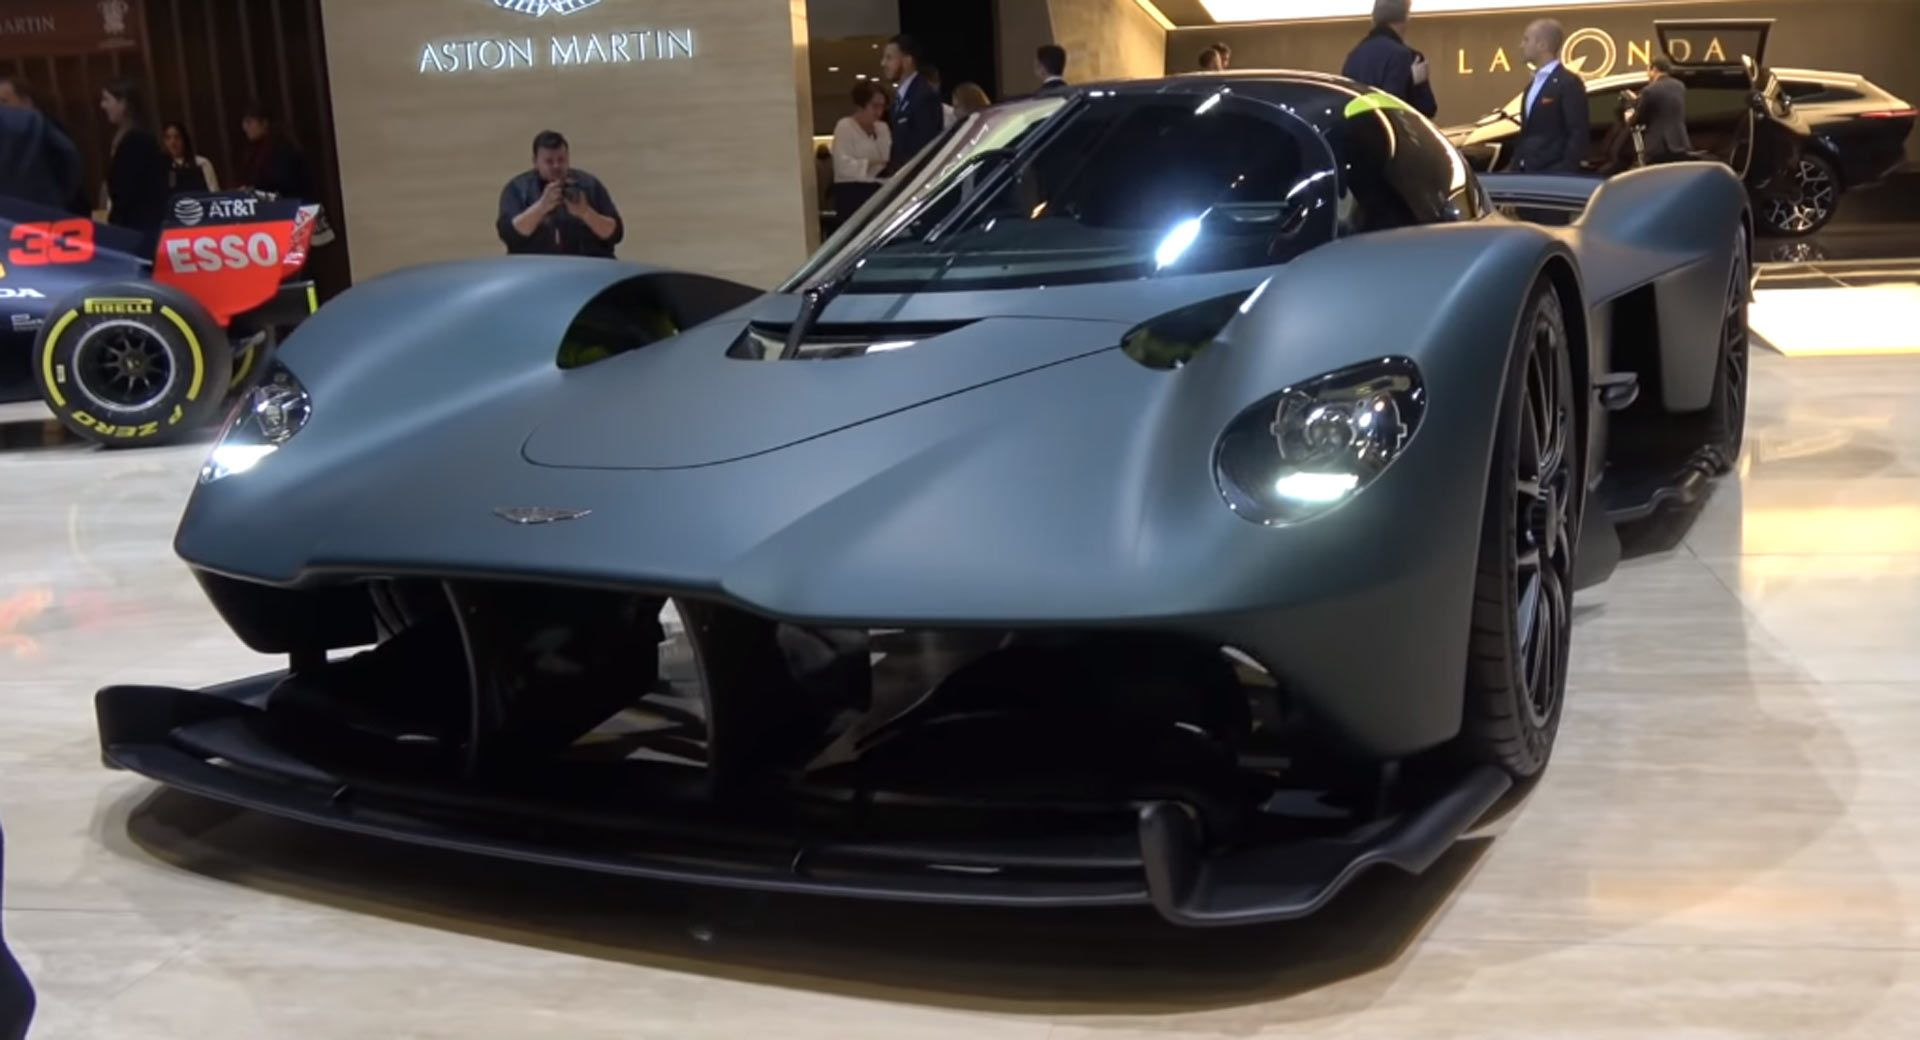 Harry's Garage Picks The Best And Worst New Cars Of The